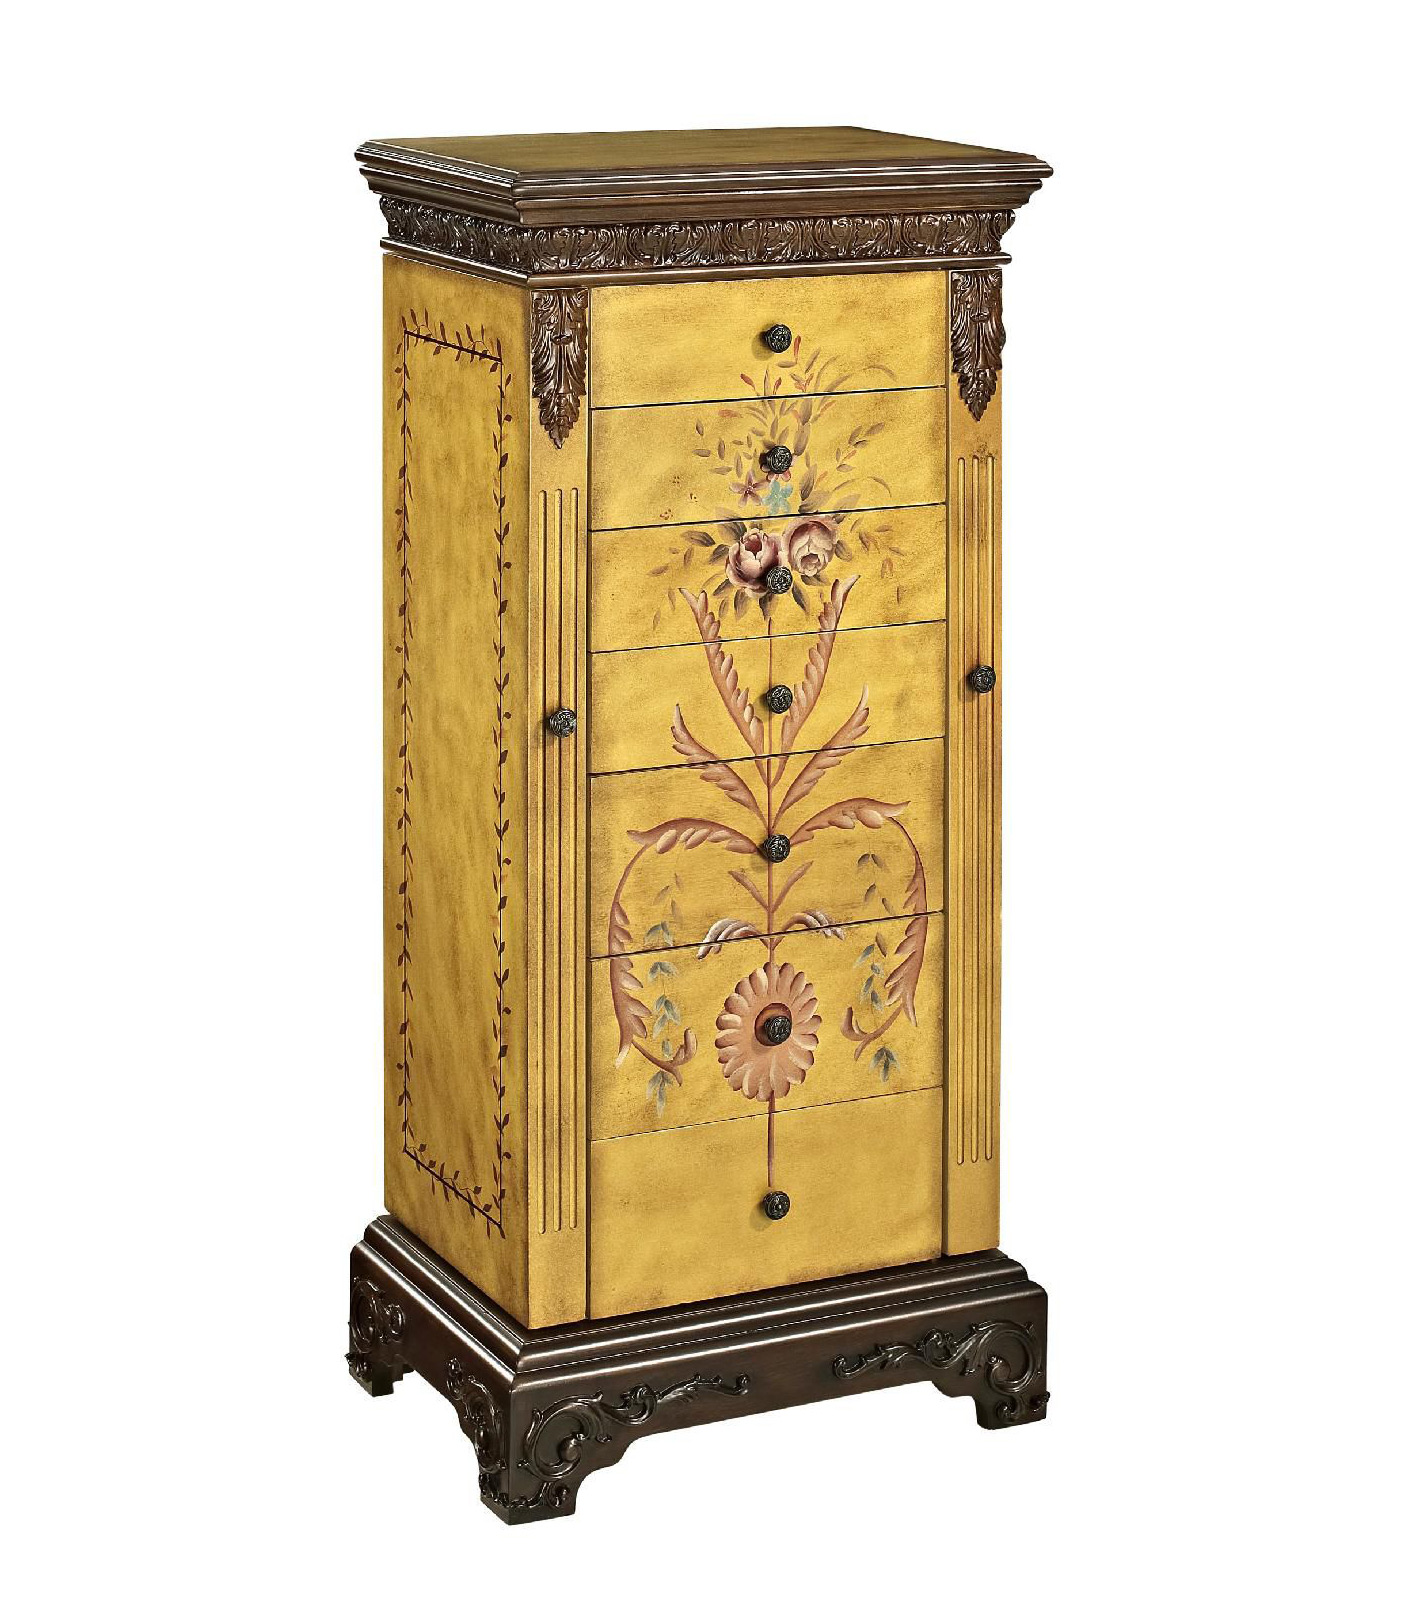 Creative Antique Decorative Gold Brown Wall Standing Jewelry Armoire